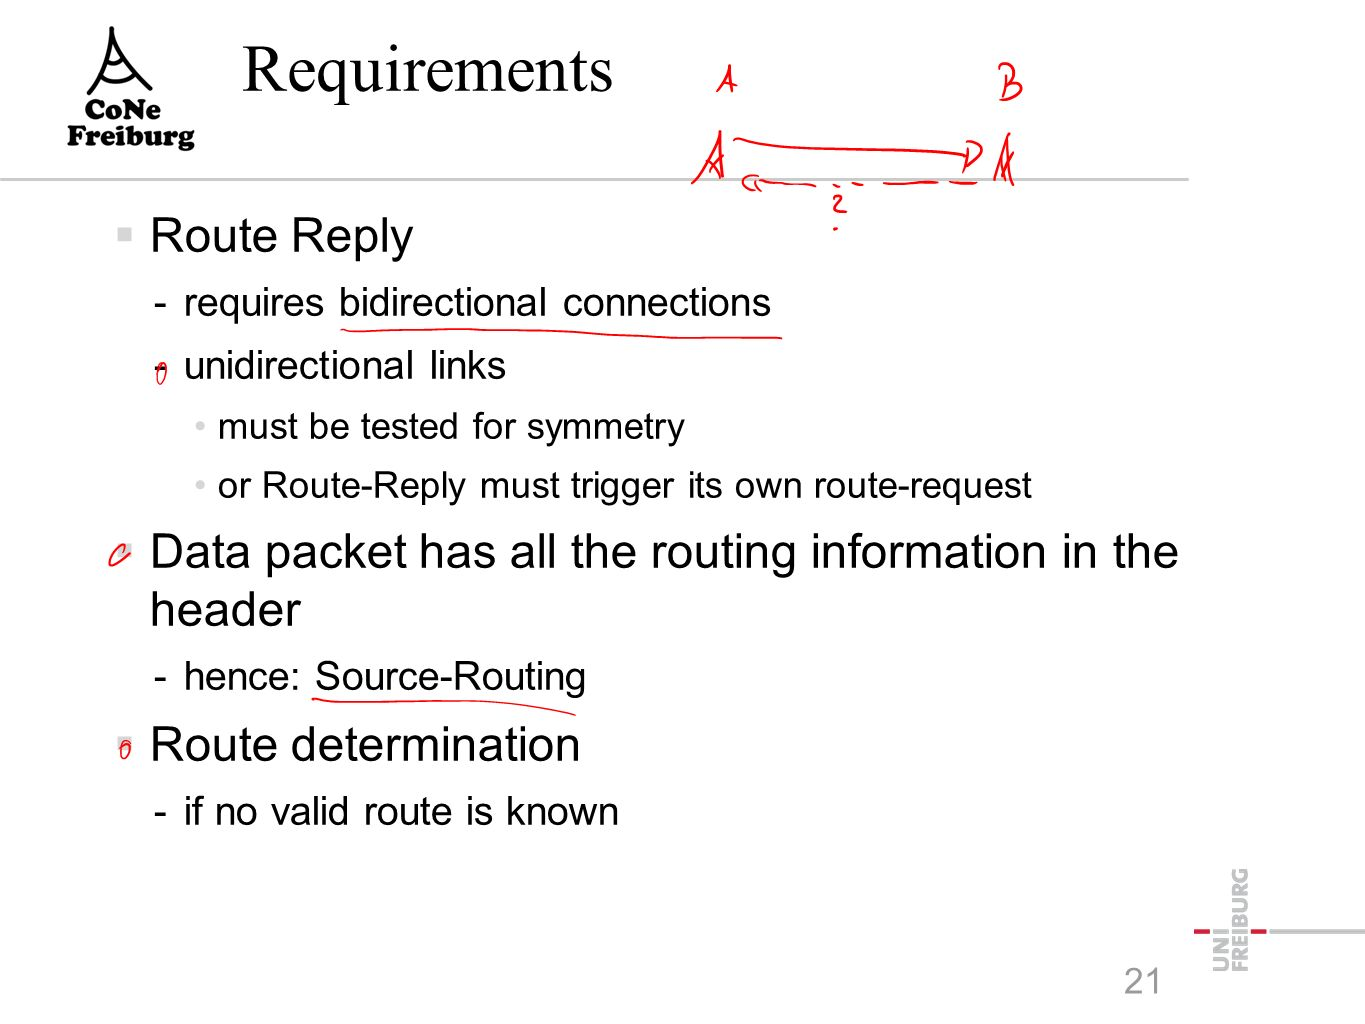 Requirements  Route Reply -requires bidirectional connections -unidirectional links must be tested for symmetry or Route-Reply must trigger its own route-request  Data packet has all the routing information in the header -hence: Source-Routing  Route determination -if no valid route is known 21